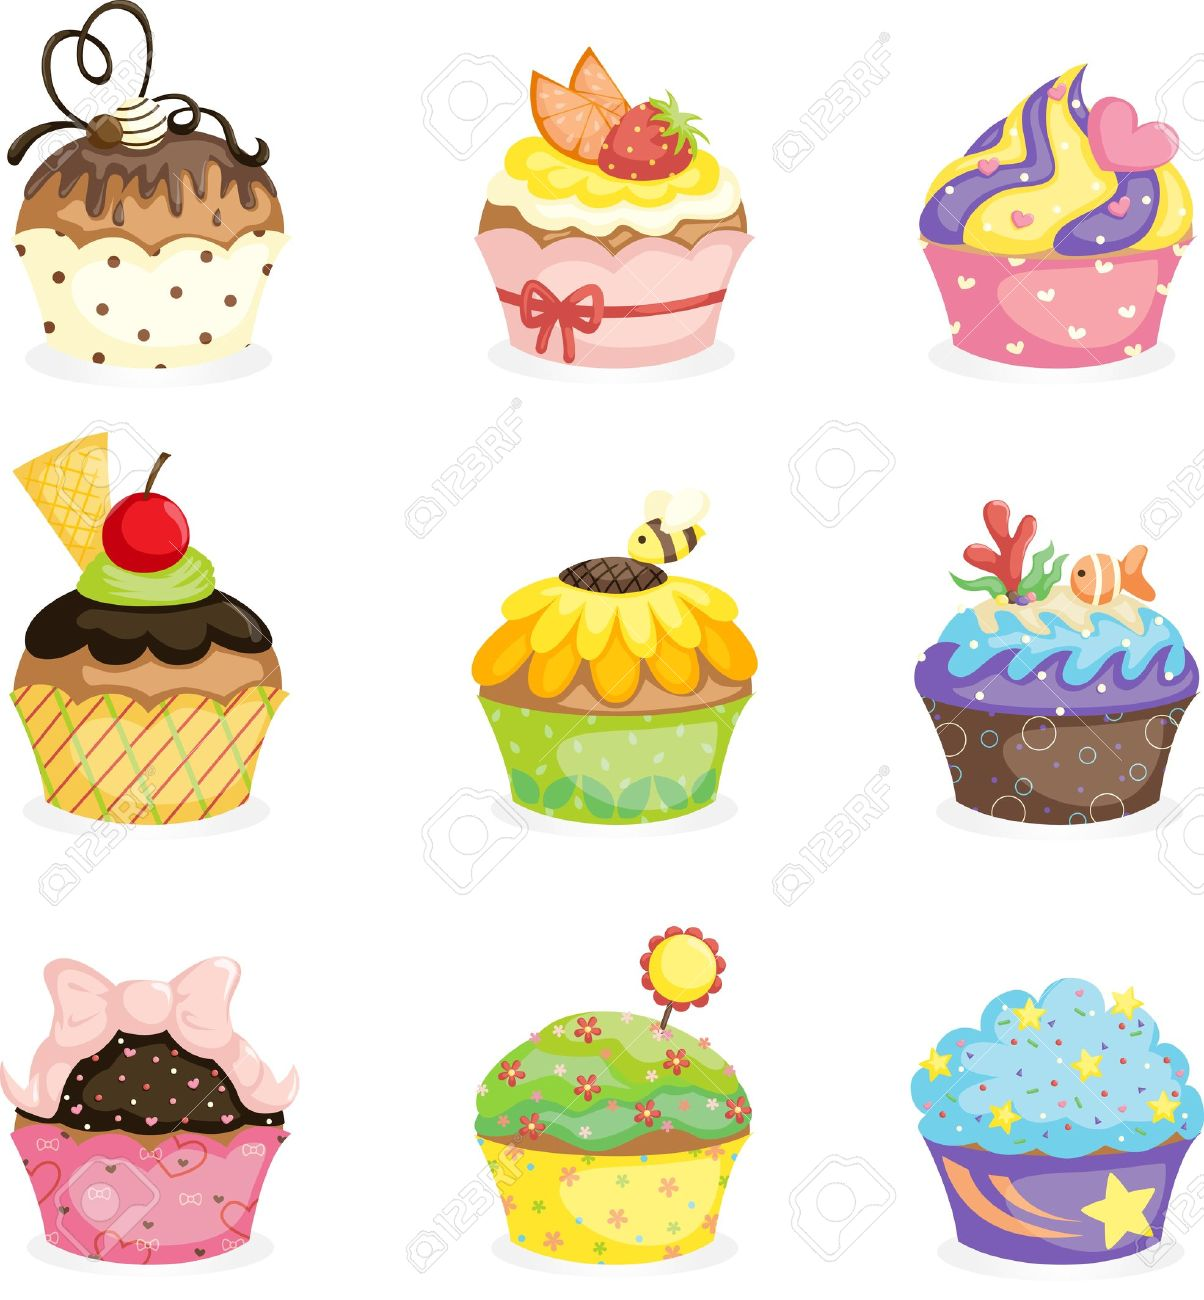 A Vector Illustration Of Different Cupcakes Designs Royalty Free